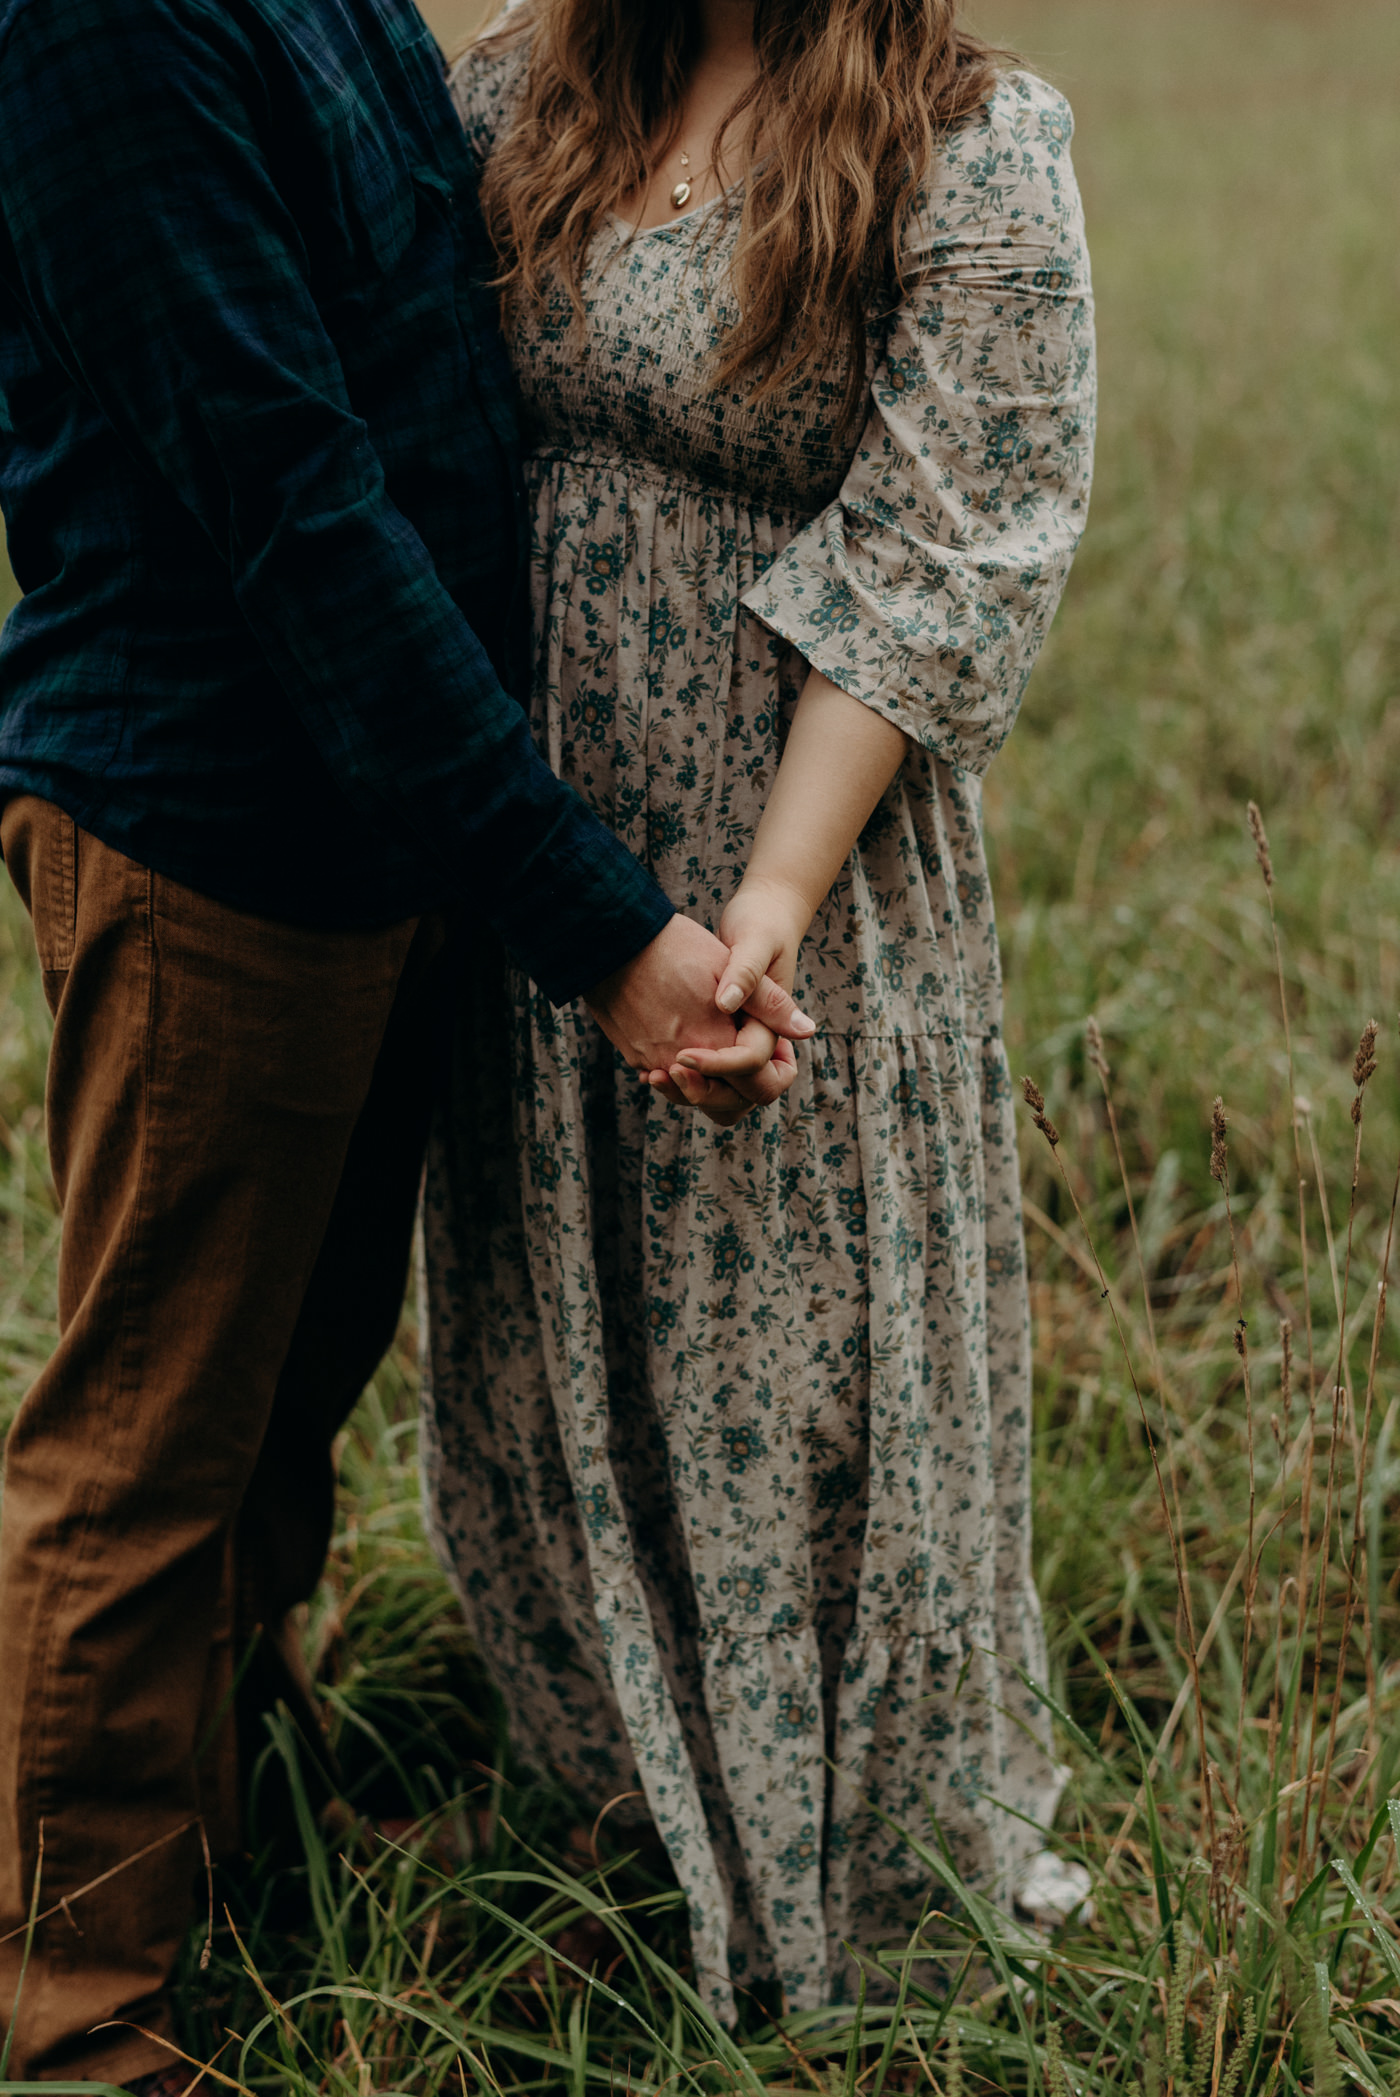 holding hands in a field for engagement shoot